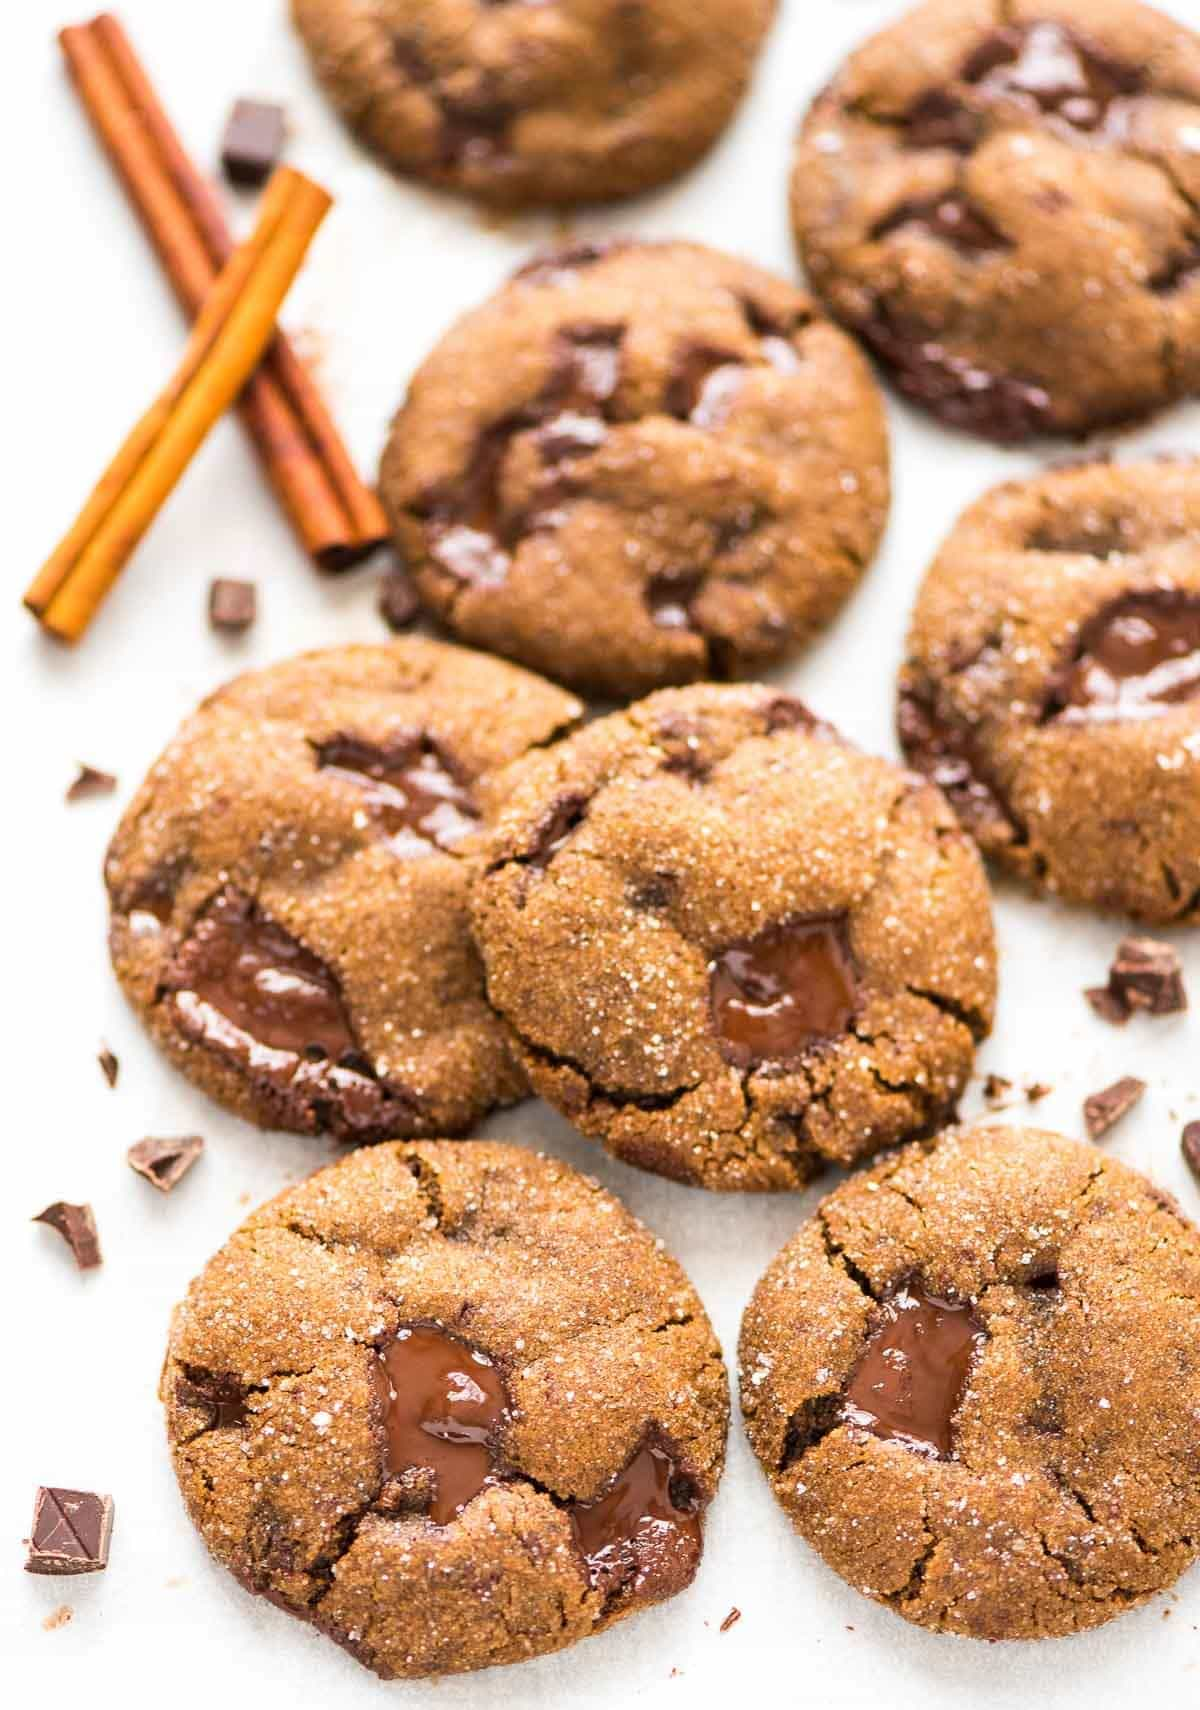 Martha Stewart's famous Chocolate Ginger Cookies. Soft and chewy with warm gingerbread spices. Fresh ginger and dark chocolate make these the best Christmas cookies for the holidays!